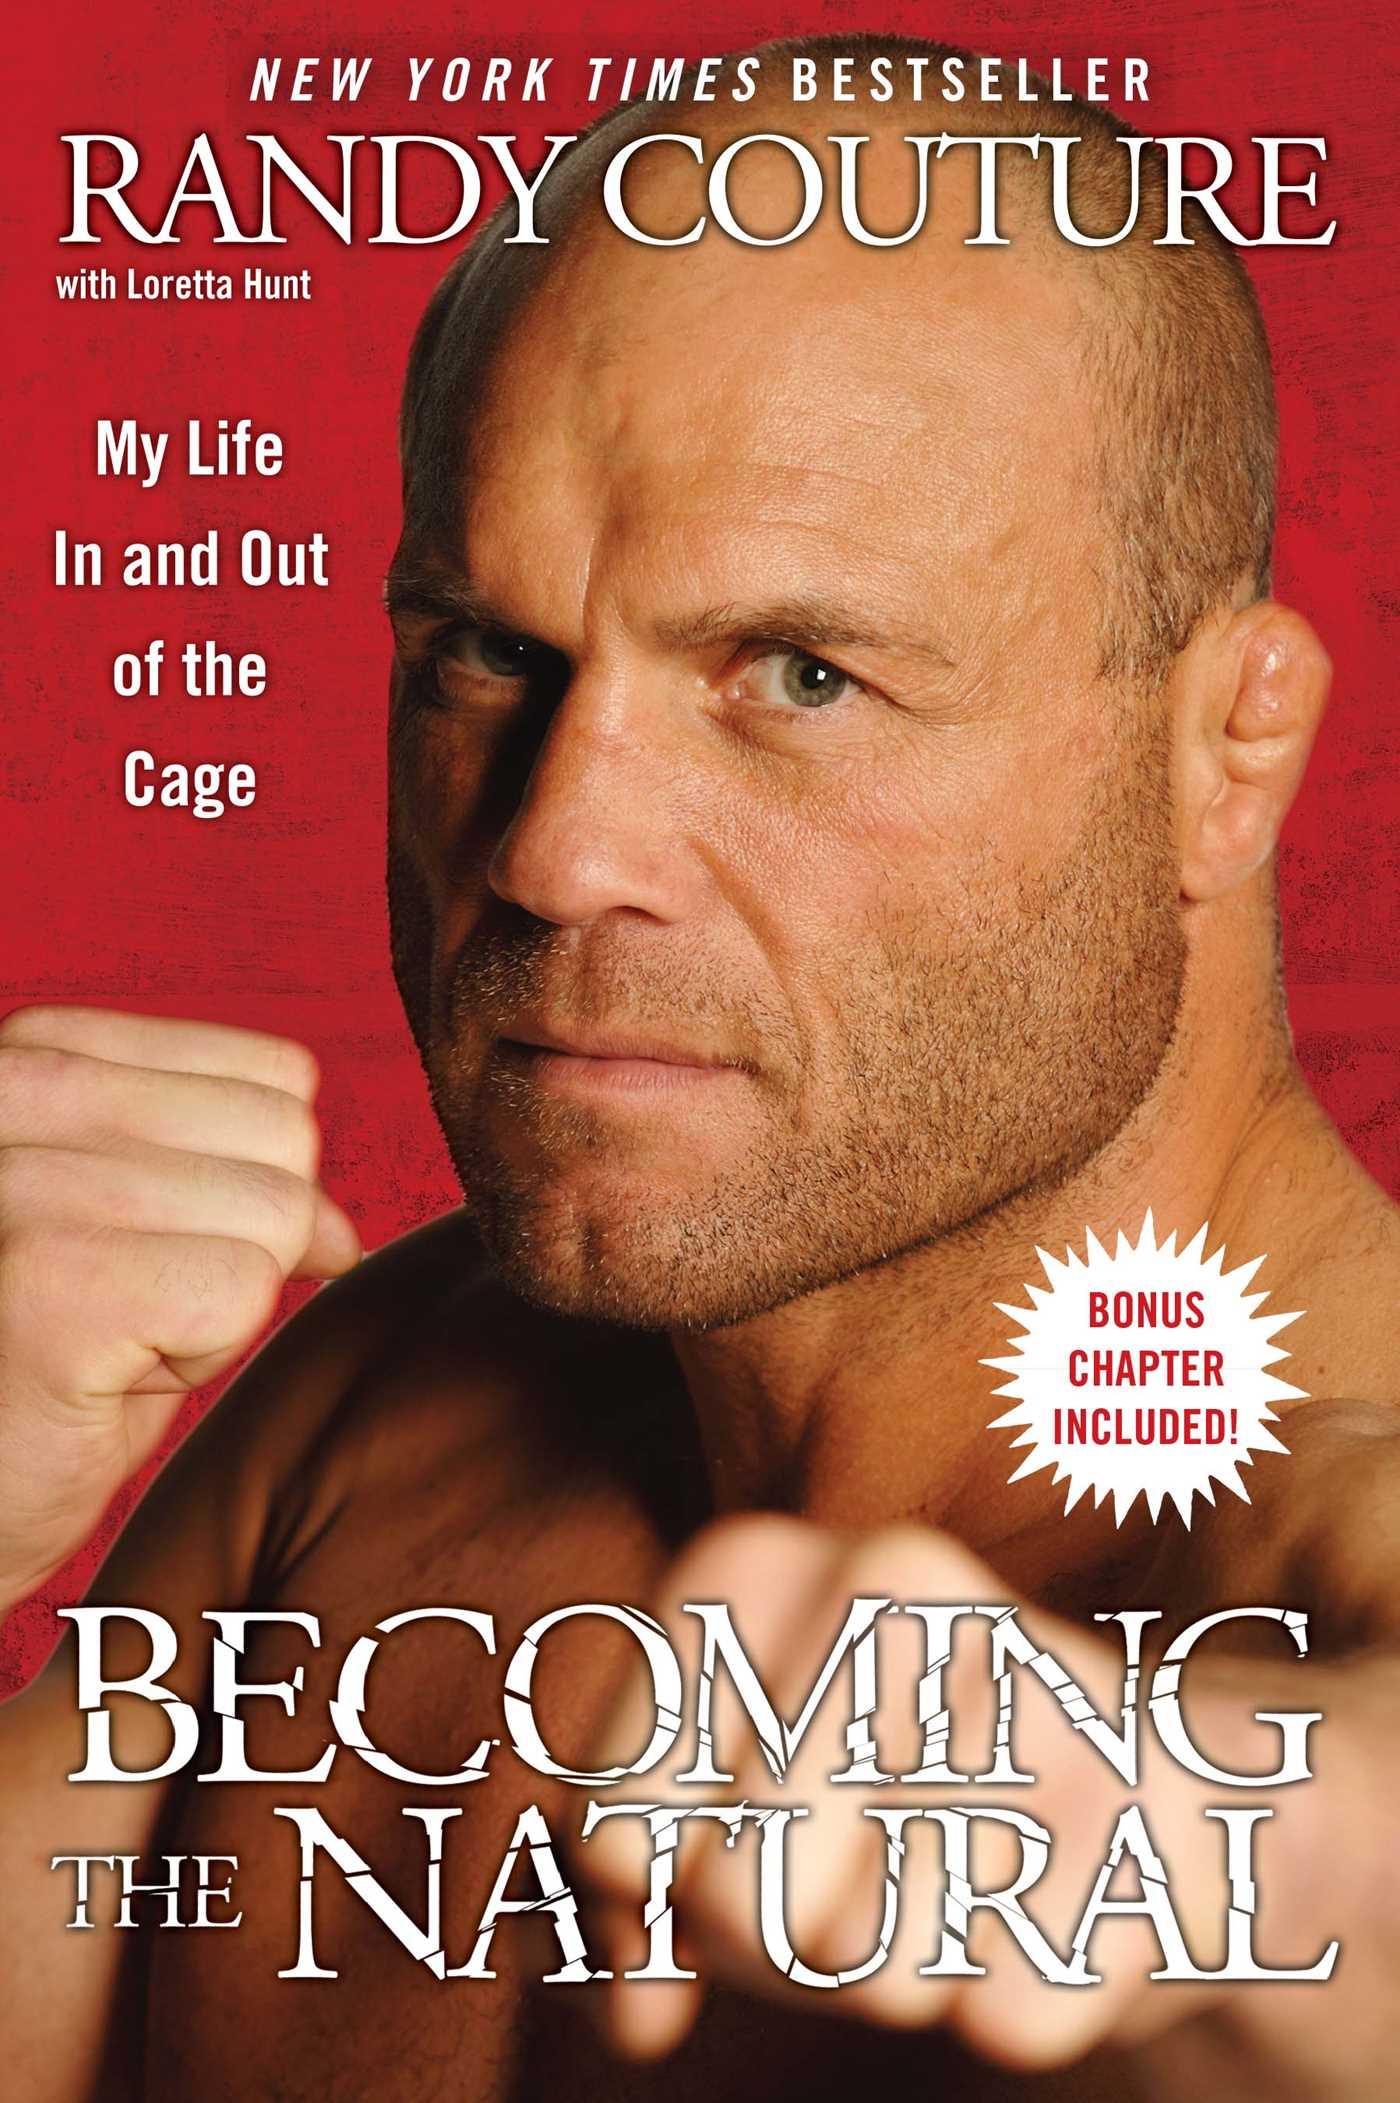 Becoming-the-natural-9781439153369_hr